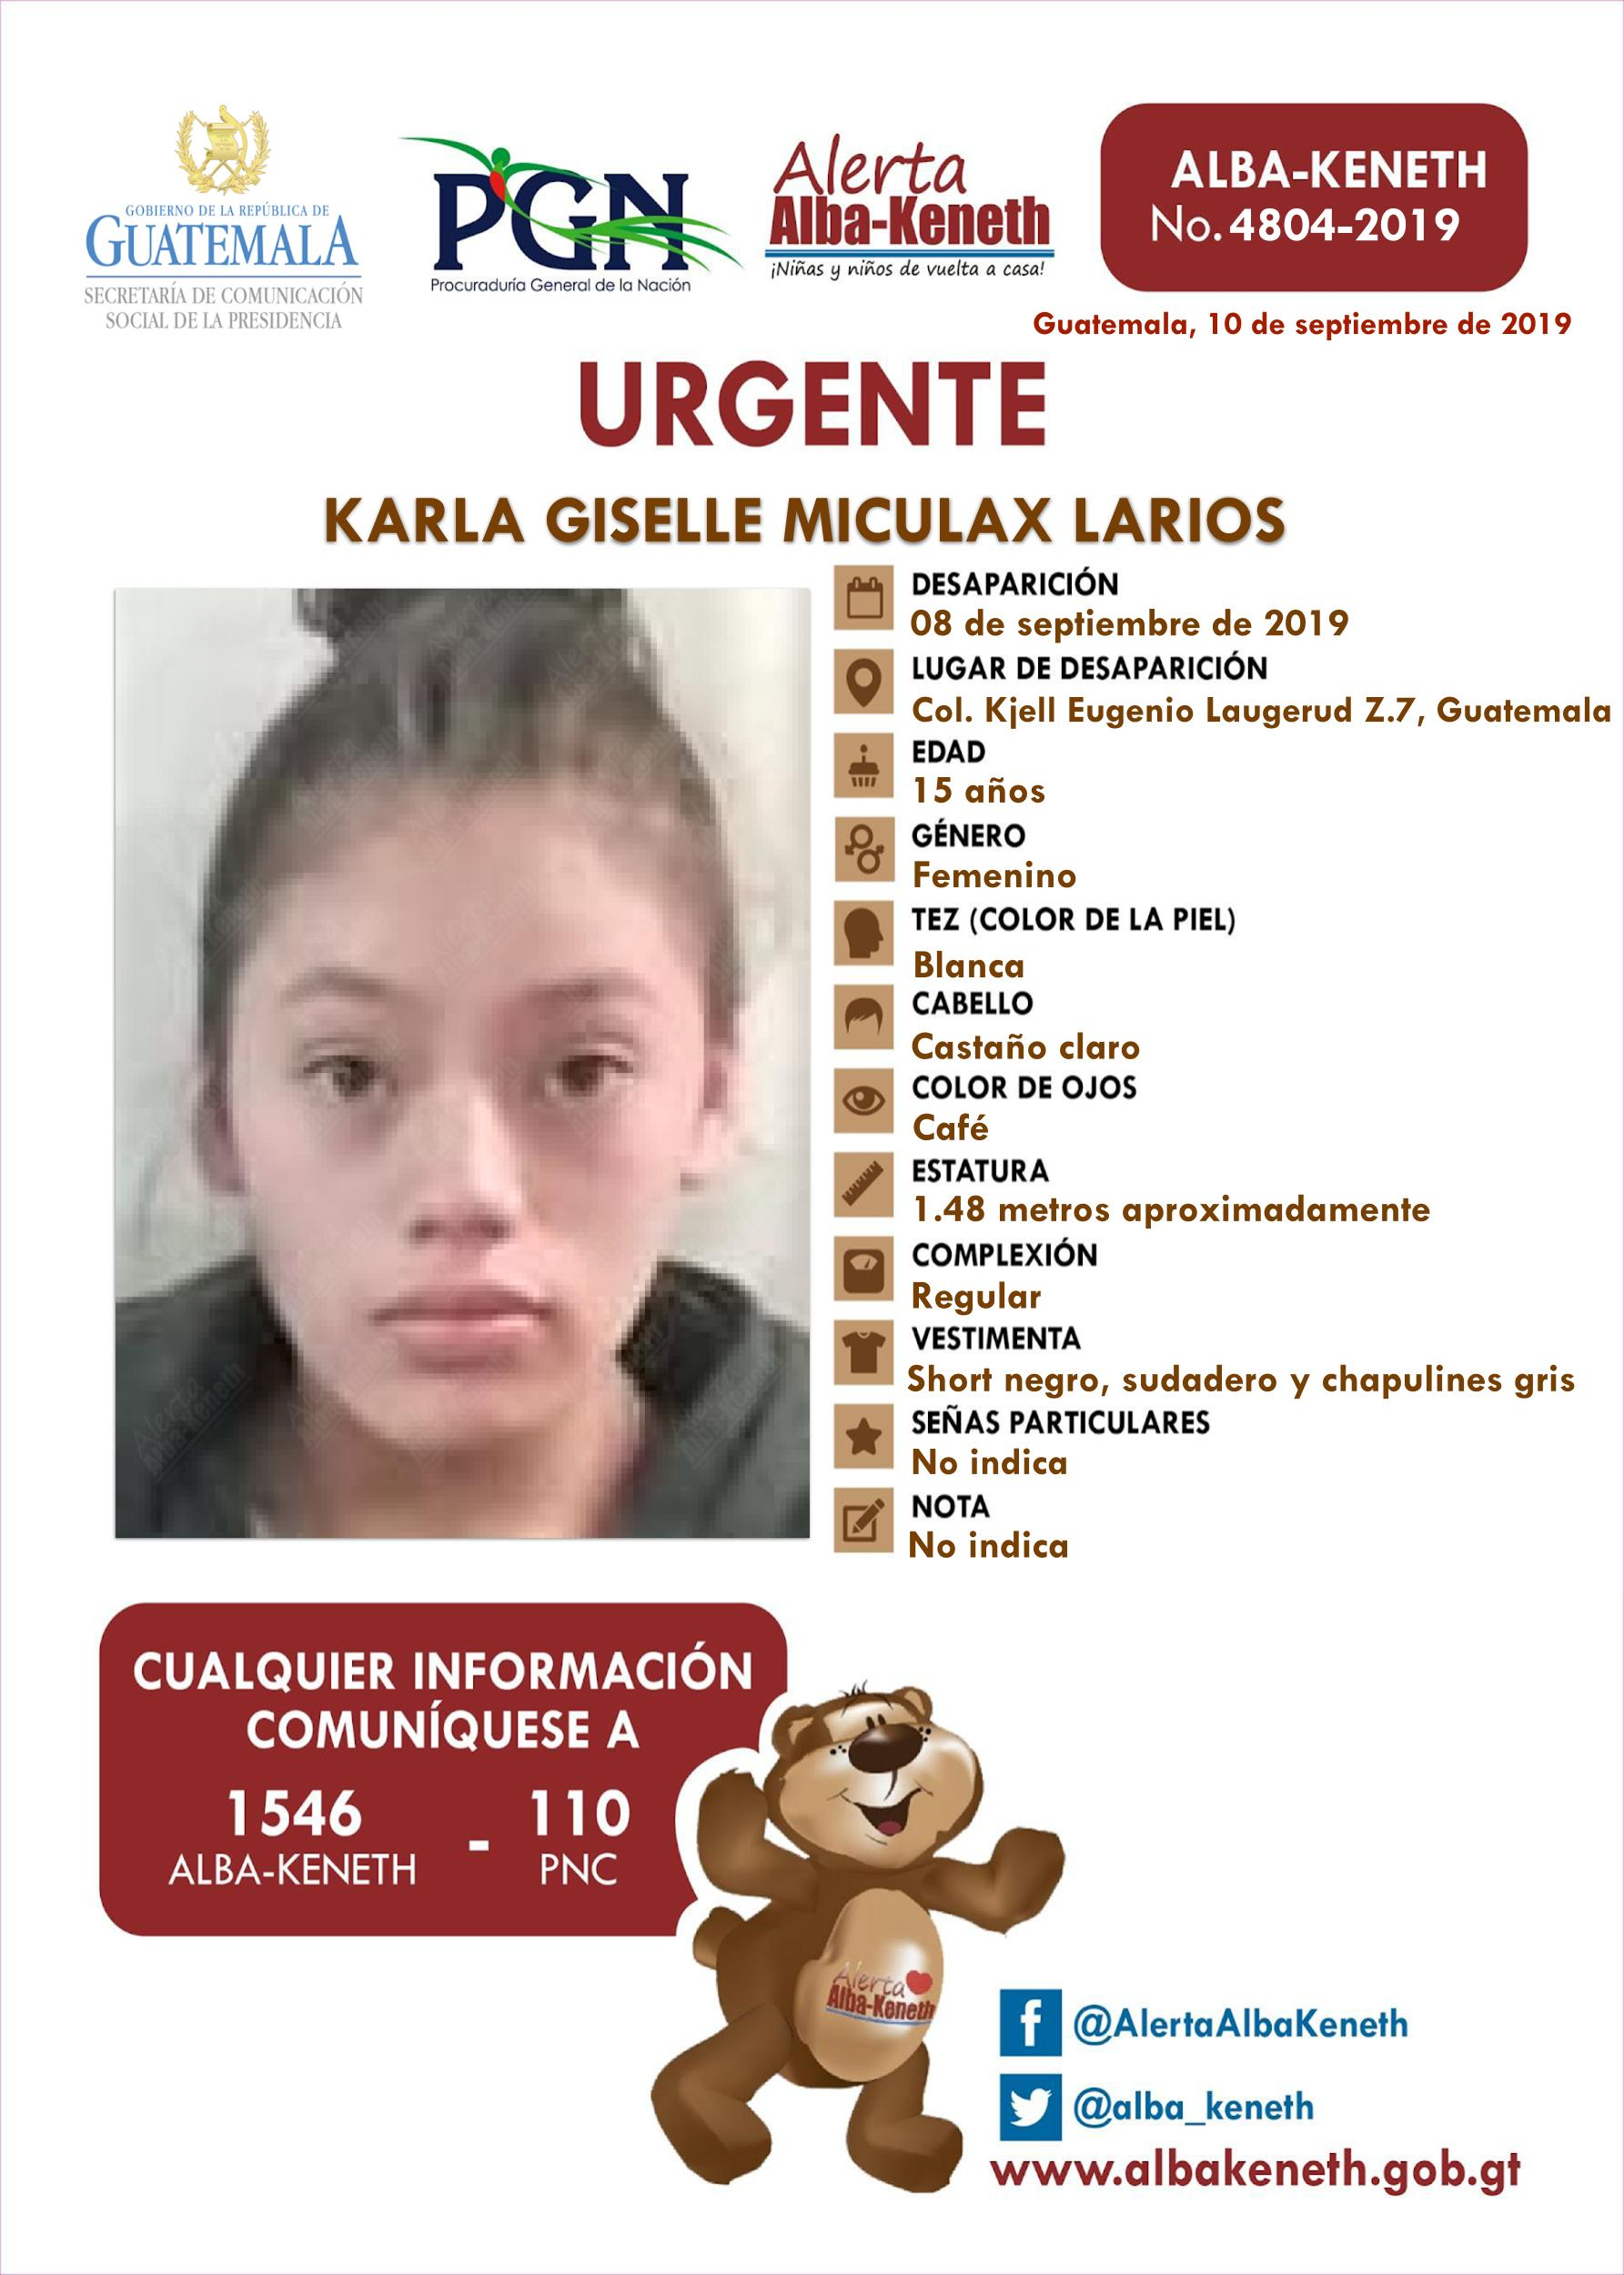 Karla Giselle Miculax Larios